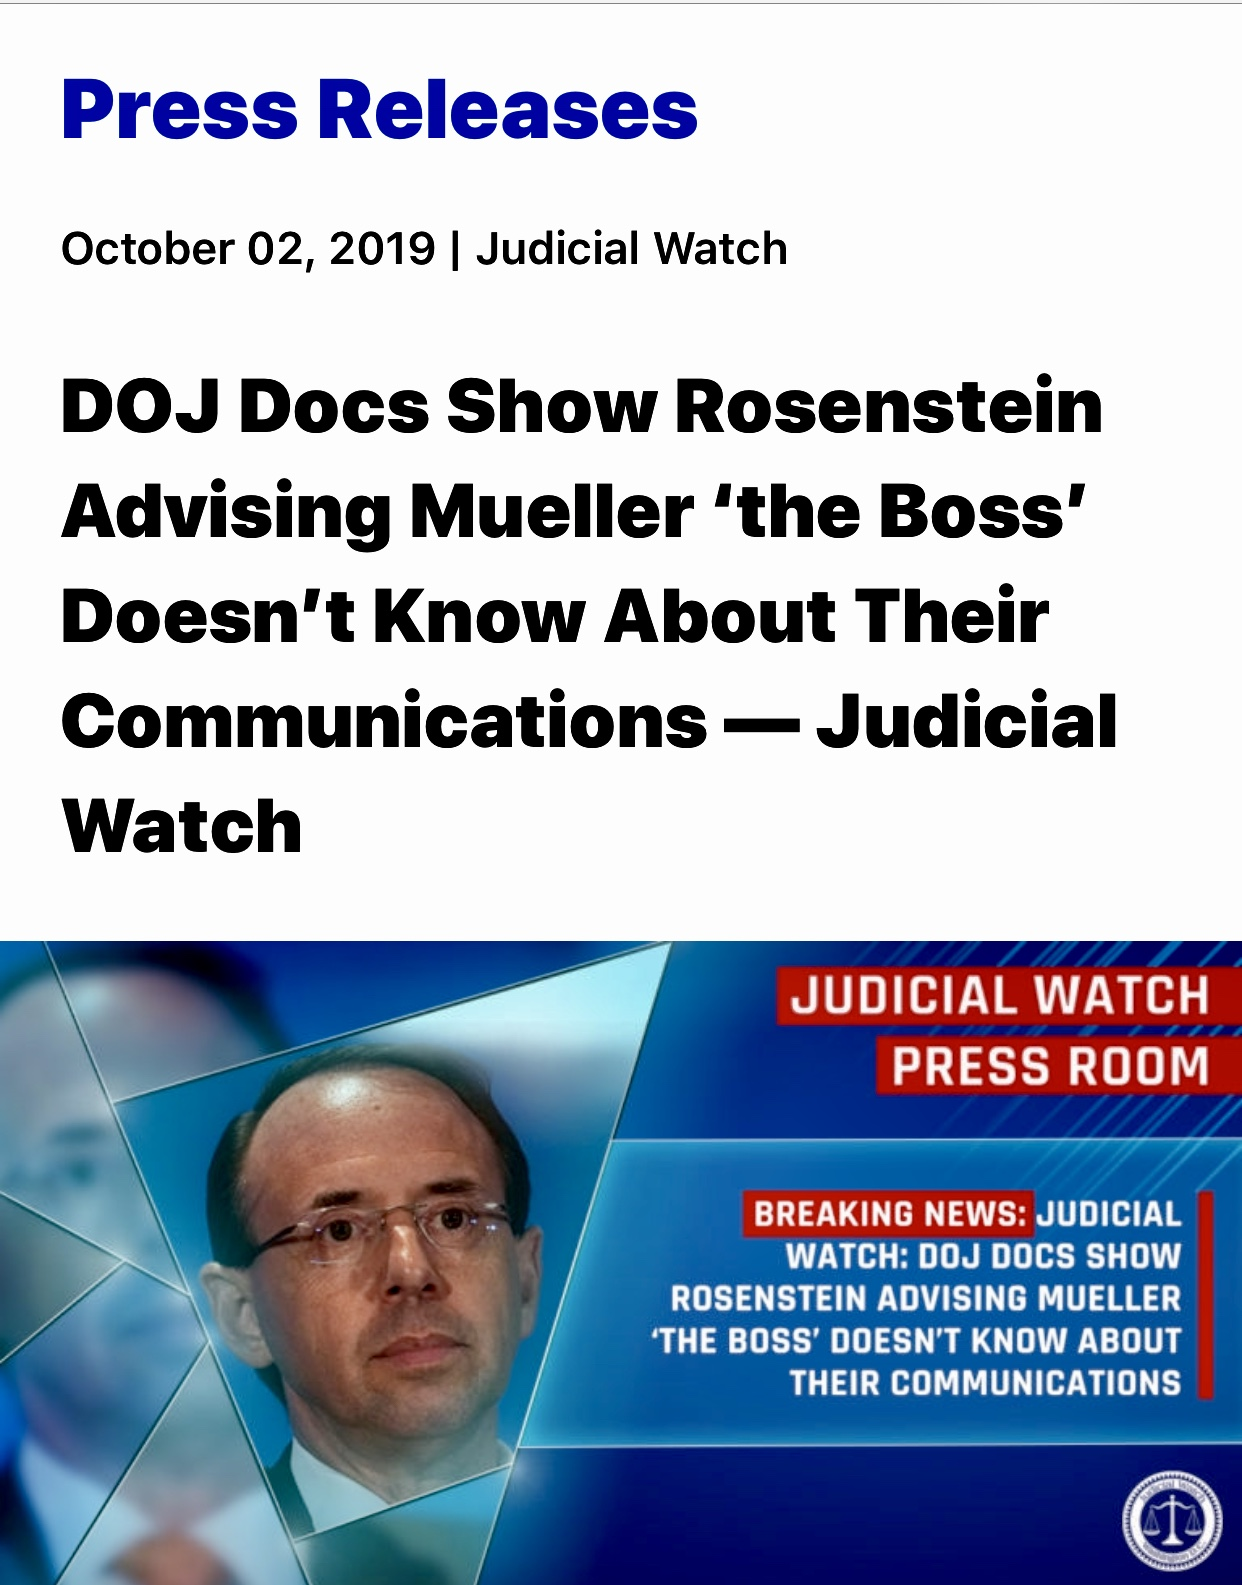 DOJ Docs Show Rosenstein Advising Mueller 'the Boss' Doesn't Know About Their Communications